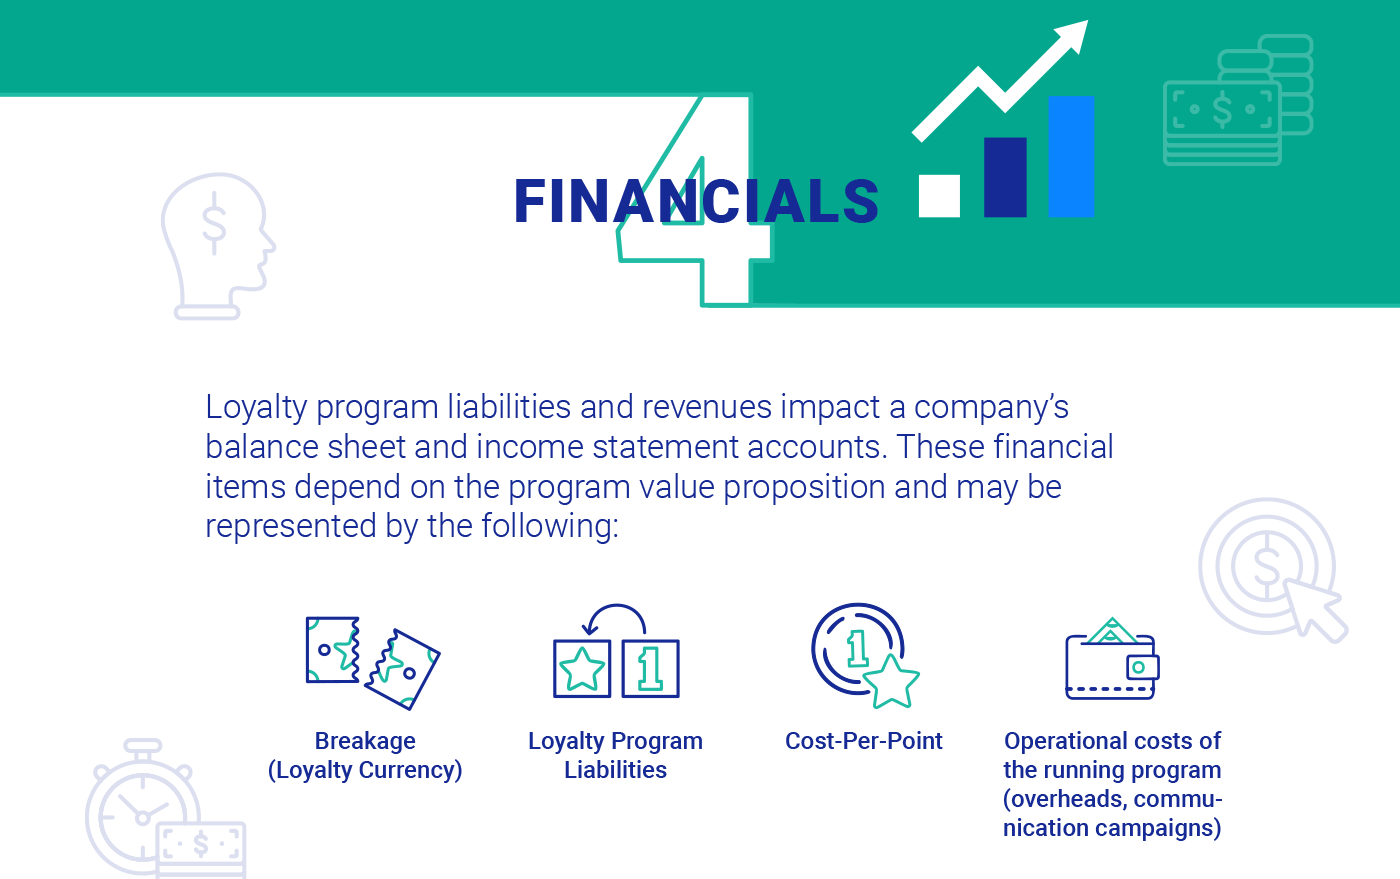 financials infographic